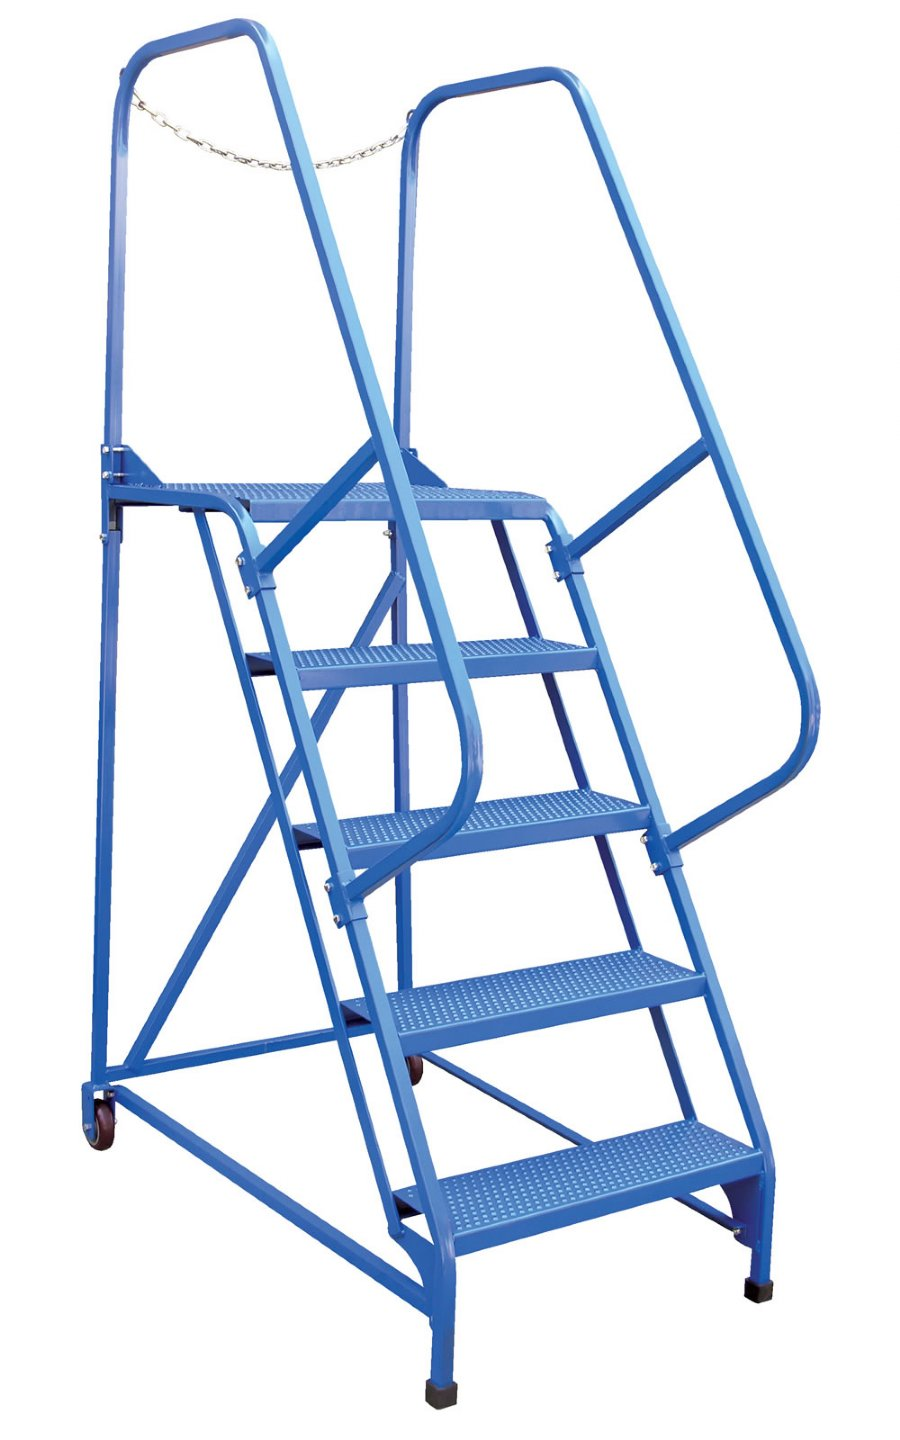 4 Steps To Success: 4 Step Portable Maintenance Ladders With Perforated Steps